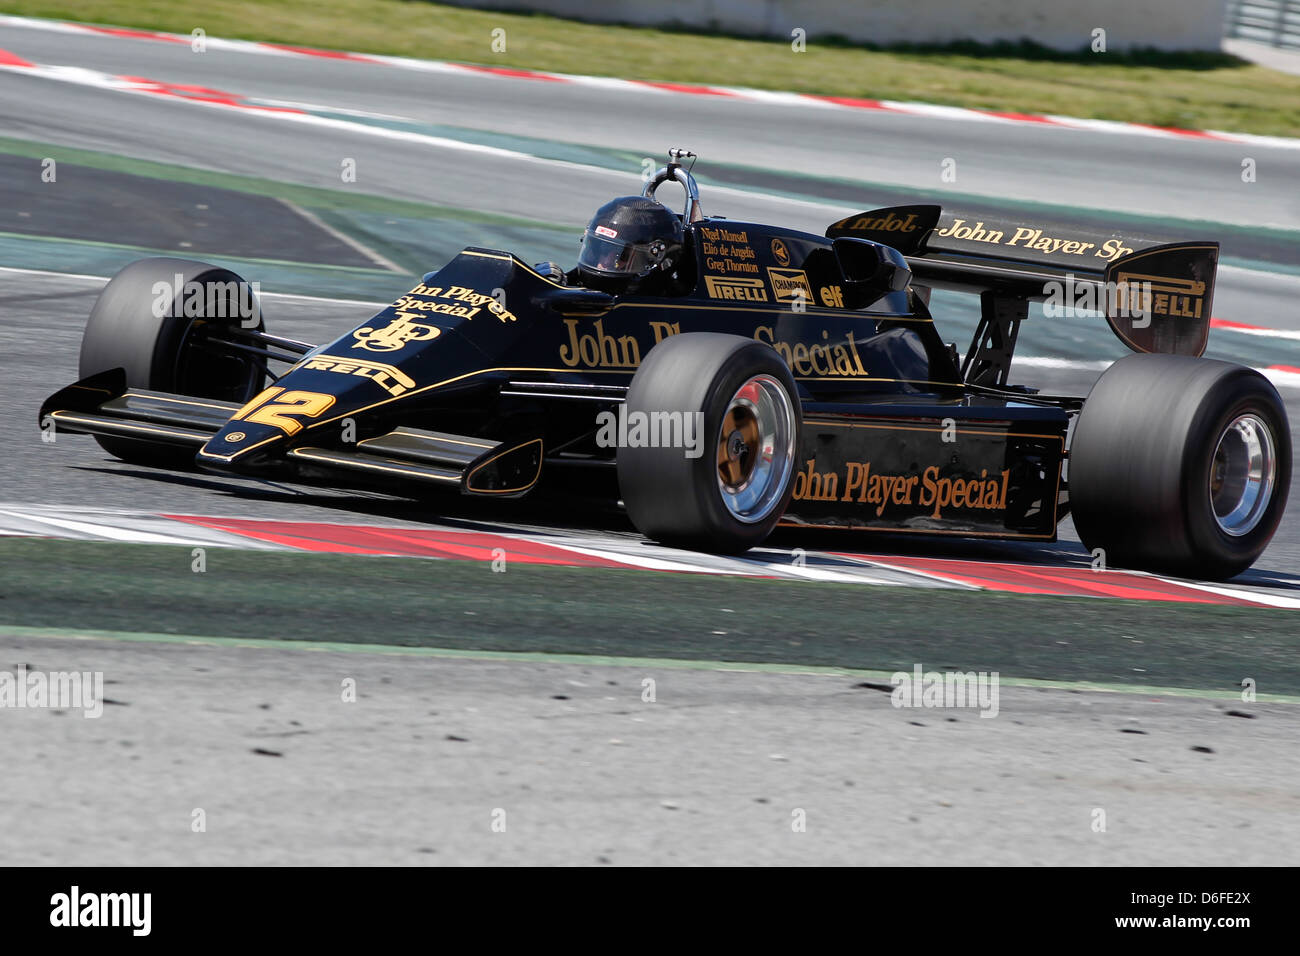 FIA Masters Historic Formula One race at Montmelo 12th April 2013 - Greg Thornton in a Lotus 92/5 - Stock Image